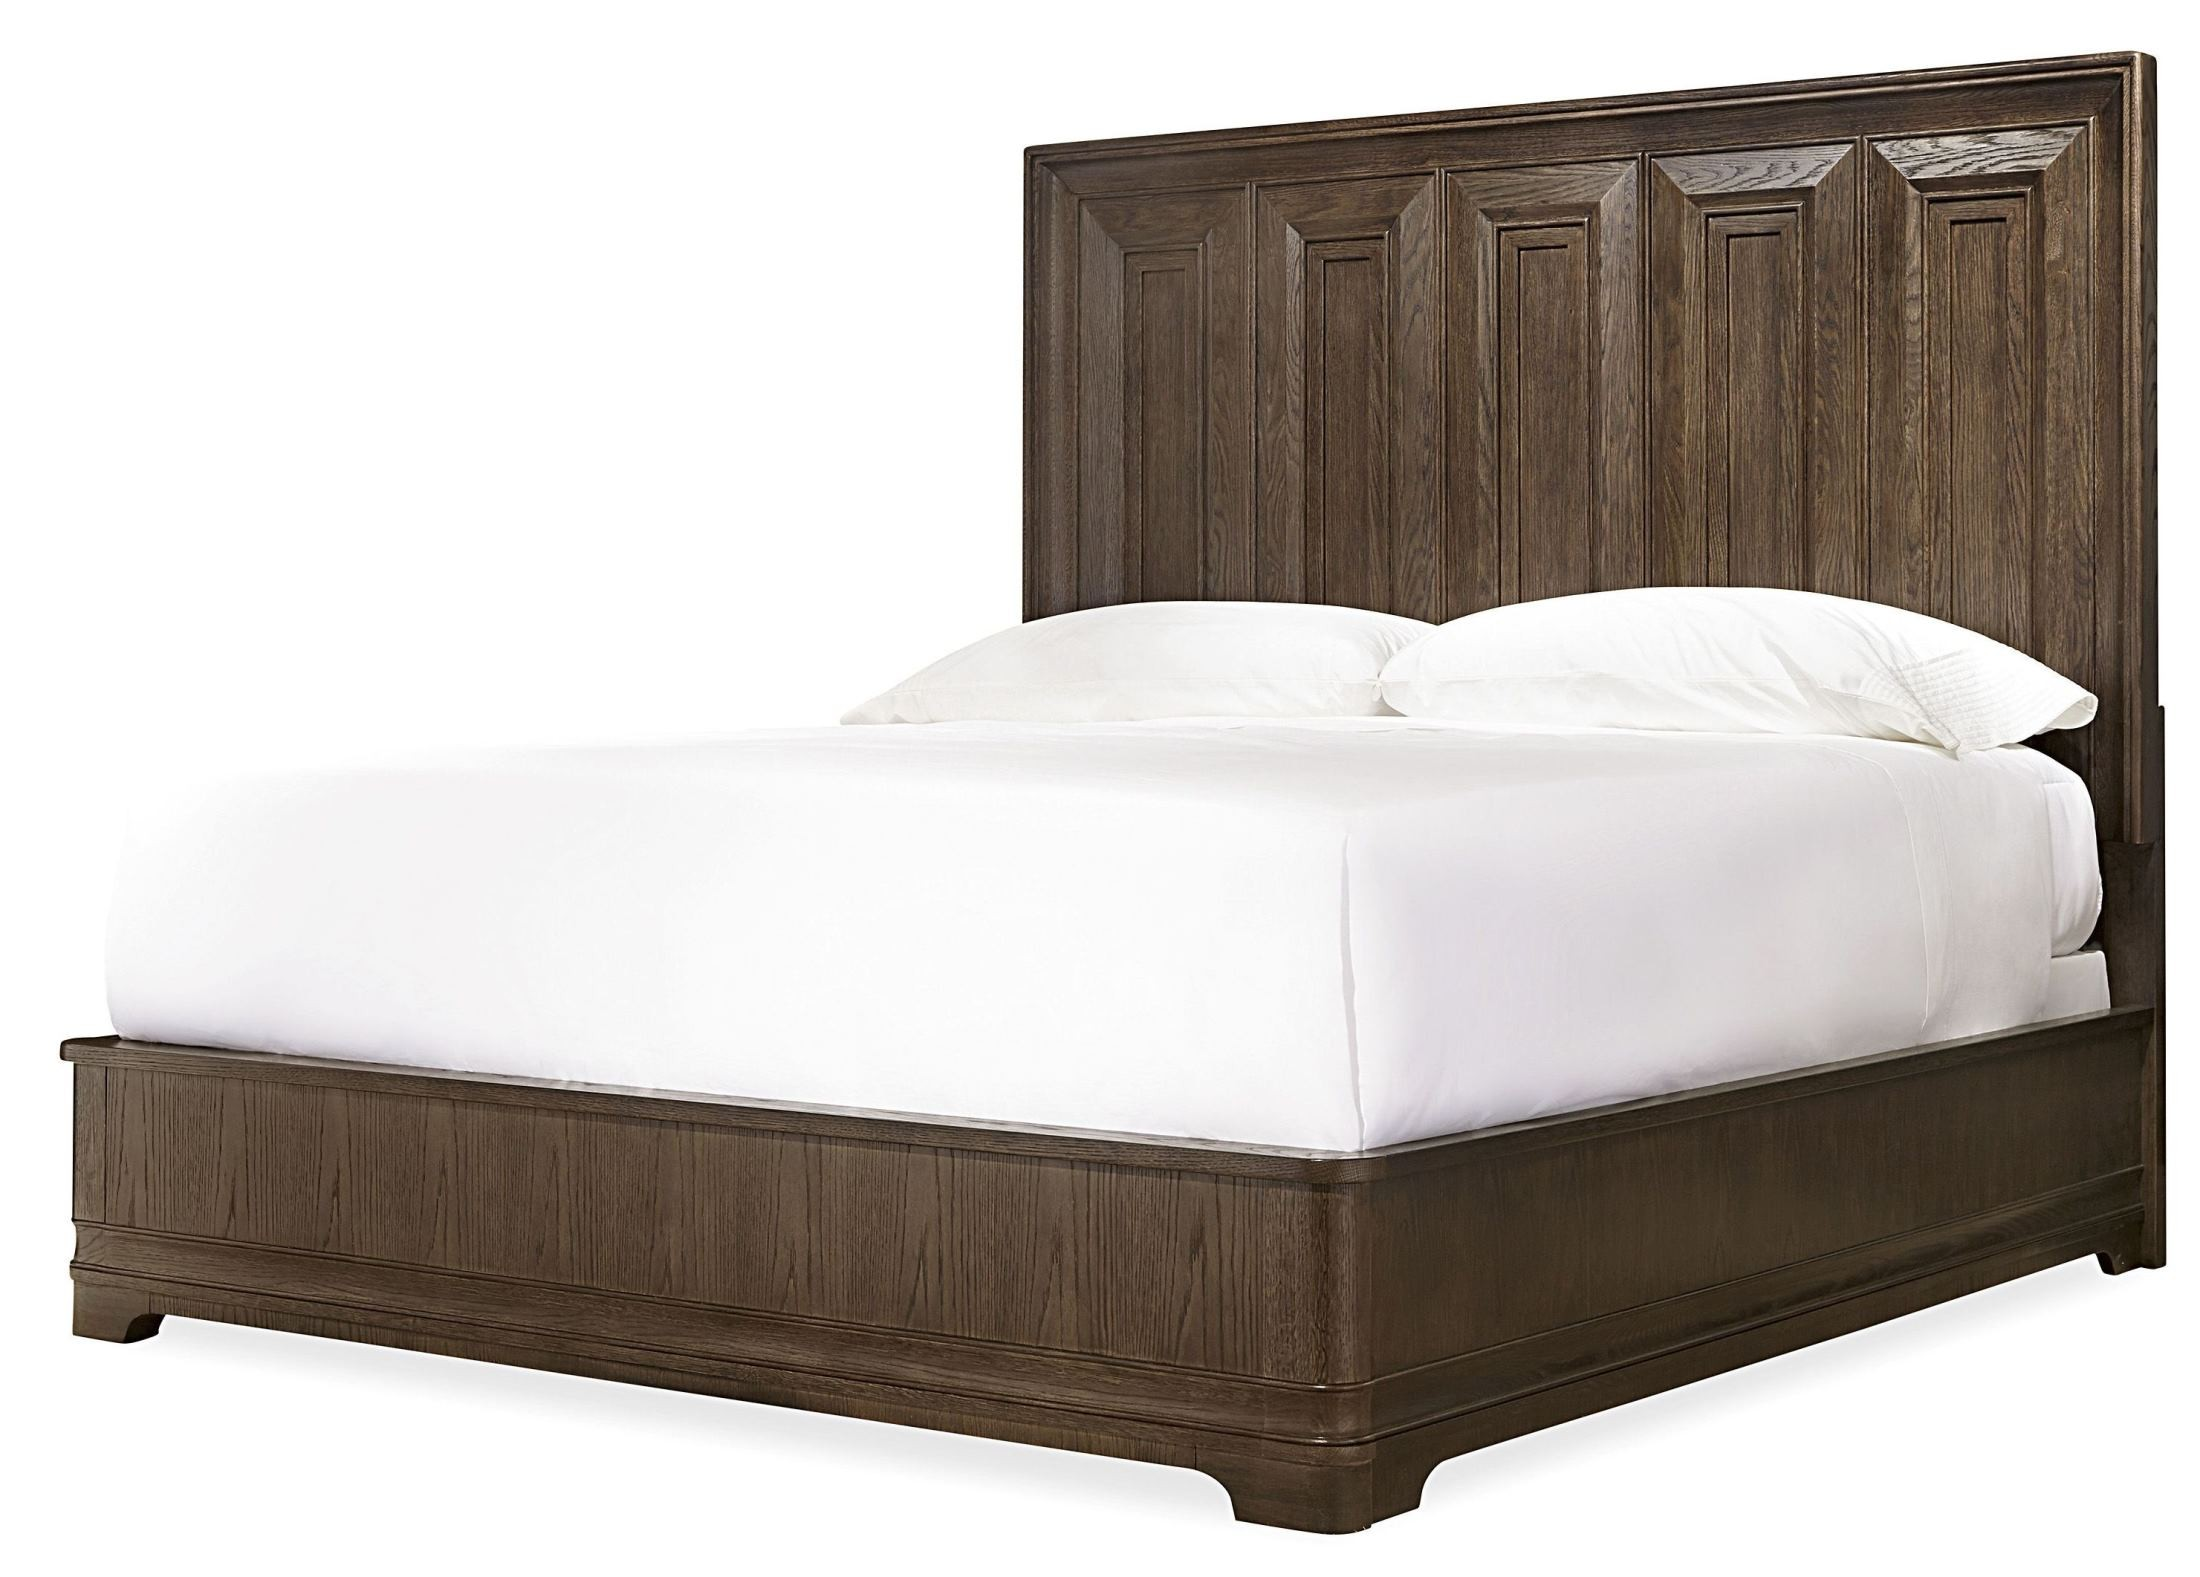 California cal king king platform bed from universal California king beds